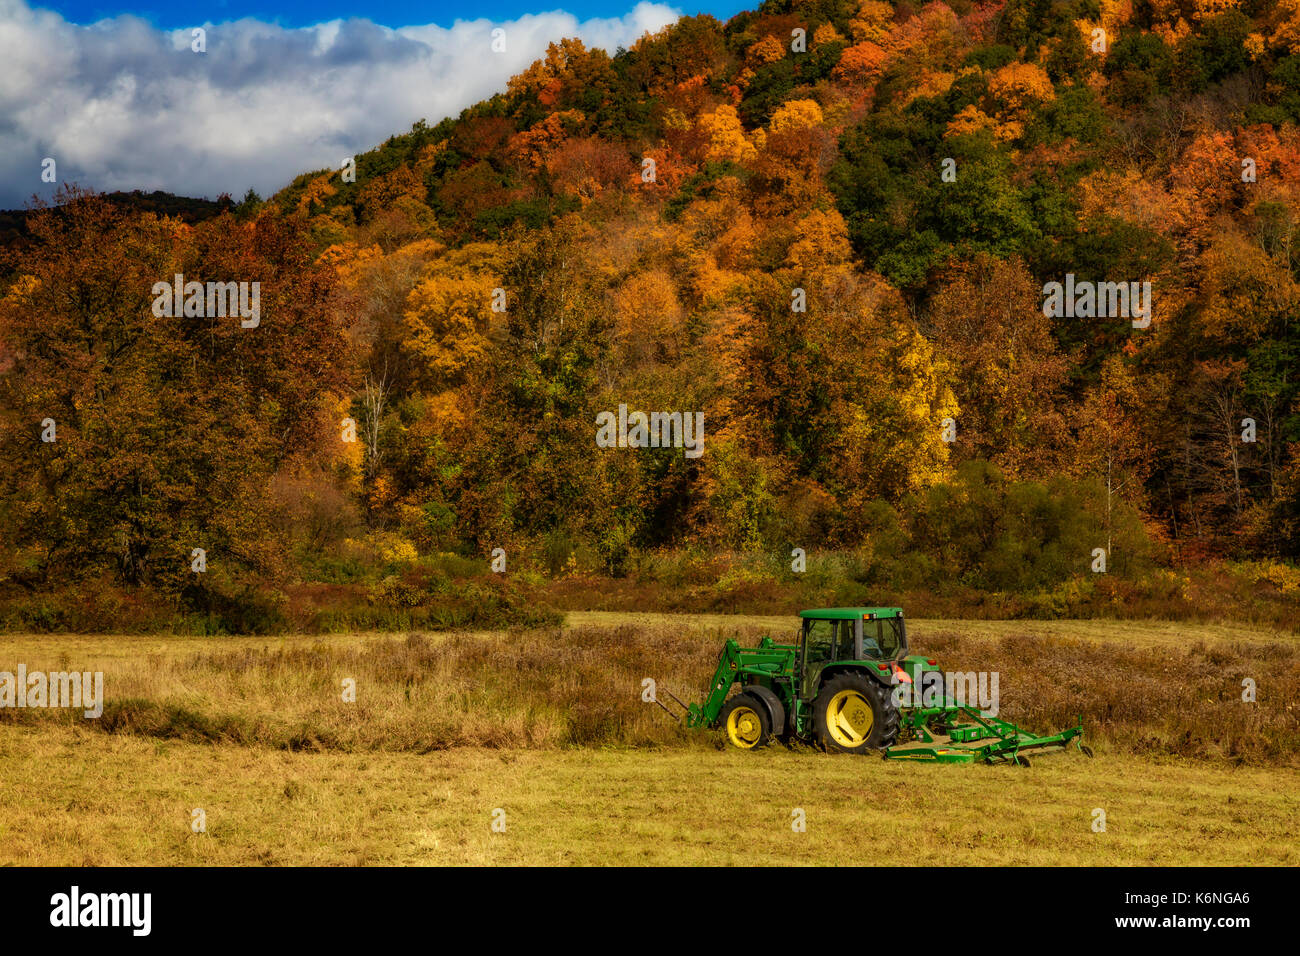 John Deere Tractor - Farmer works on the field with a John Deere 640 Tractor with a HX10 Rotary Cutter attachment in the back and bale spears in the f - Stock Image